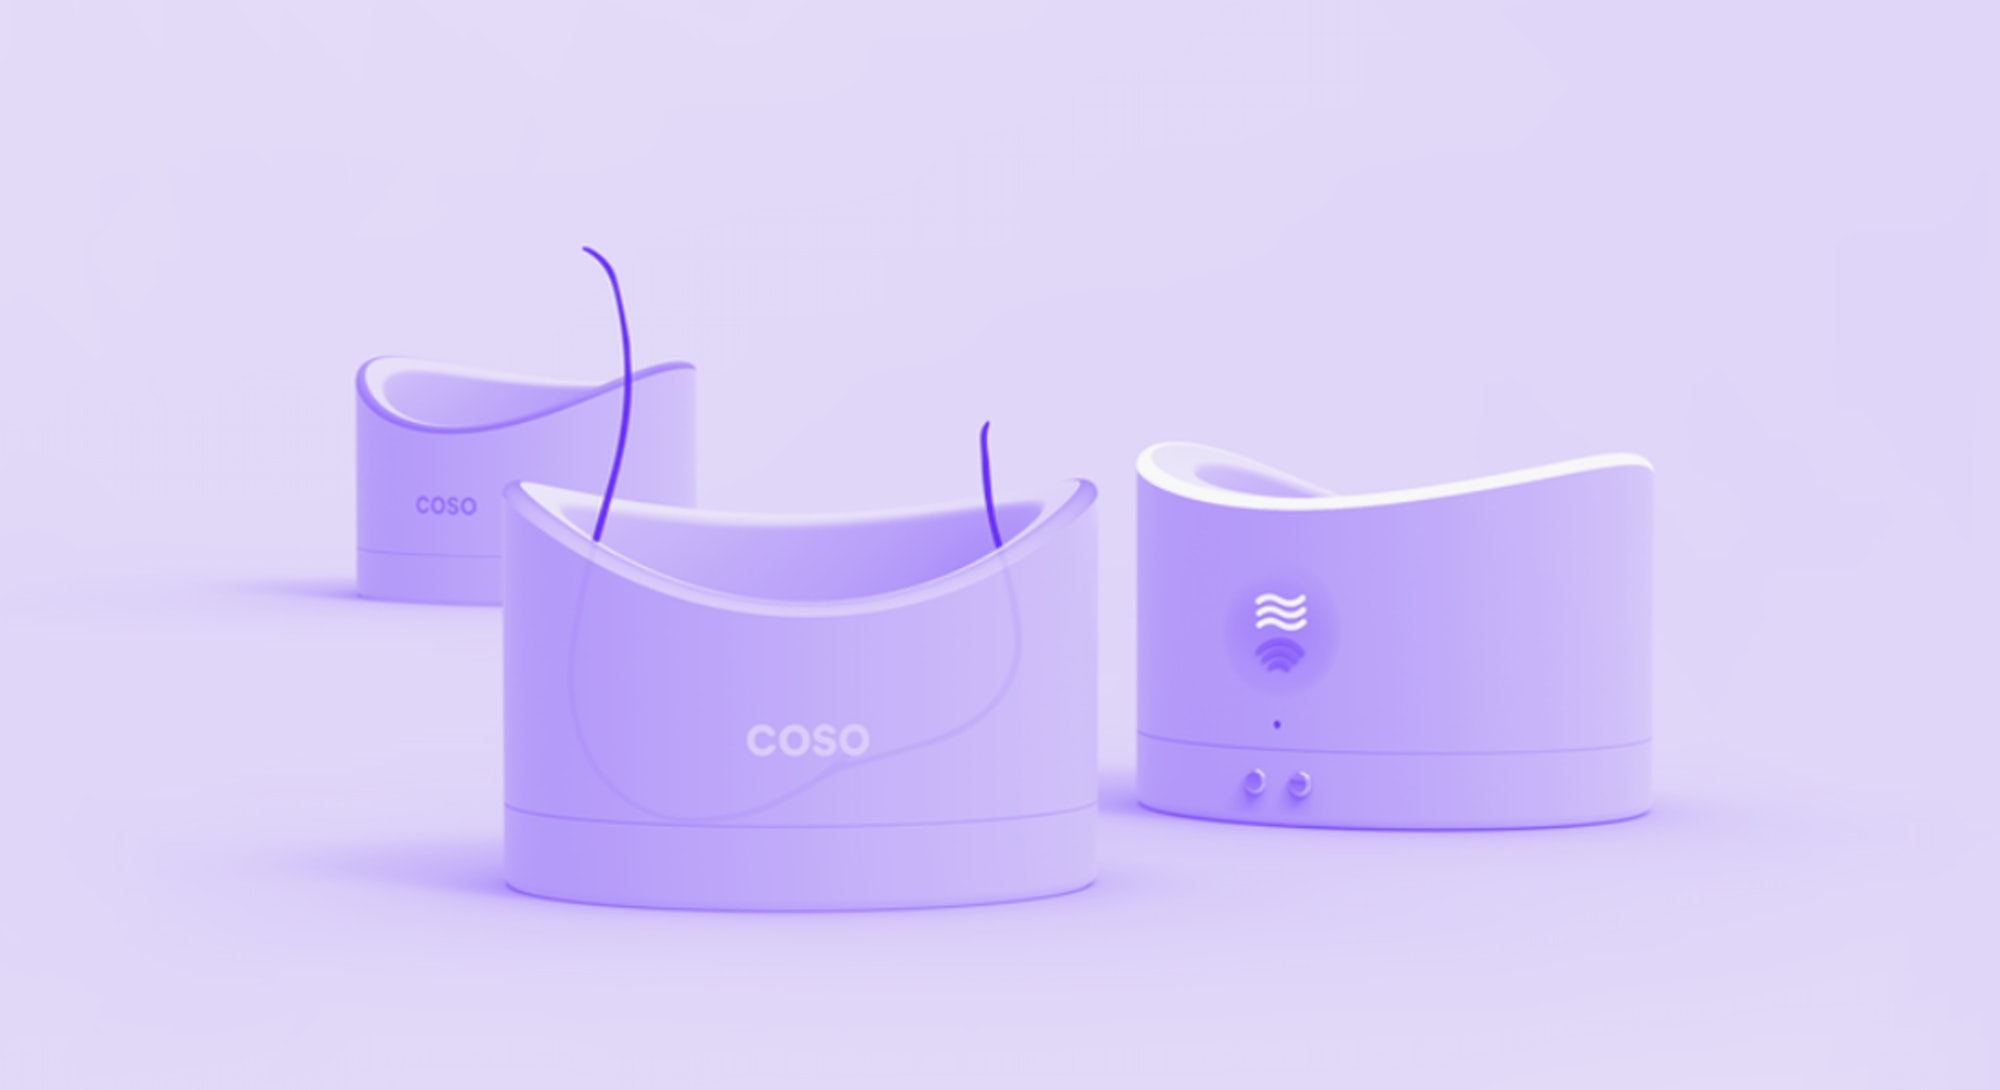 A concept contraceptive device called Coso that uses ultrasound waves to prevent sperm from regenera...